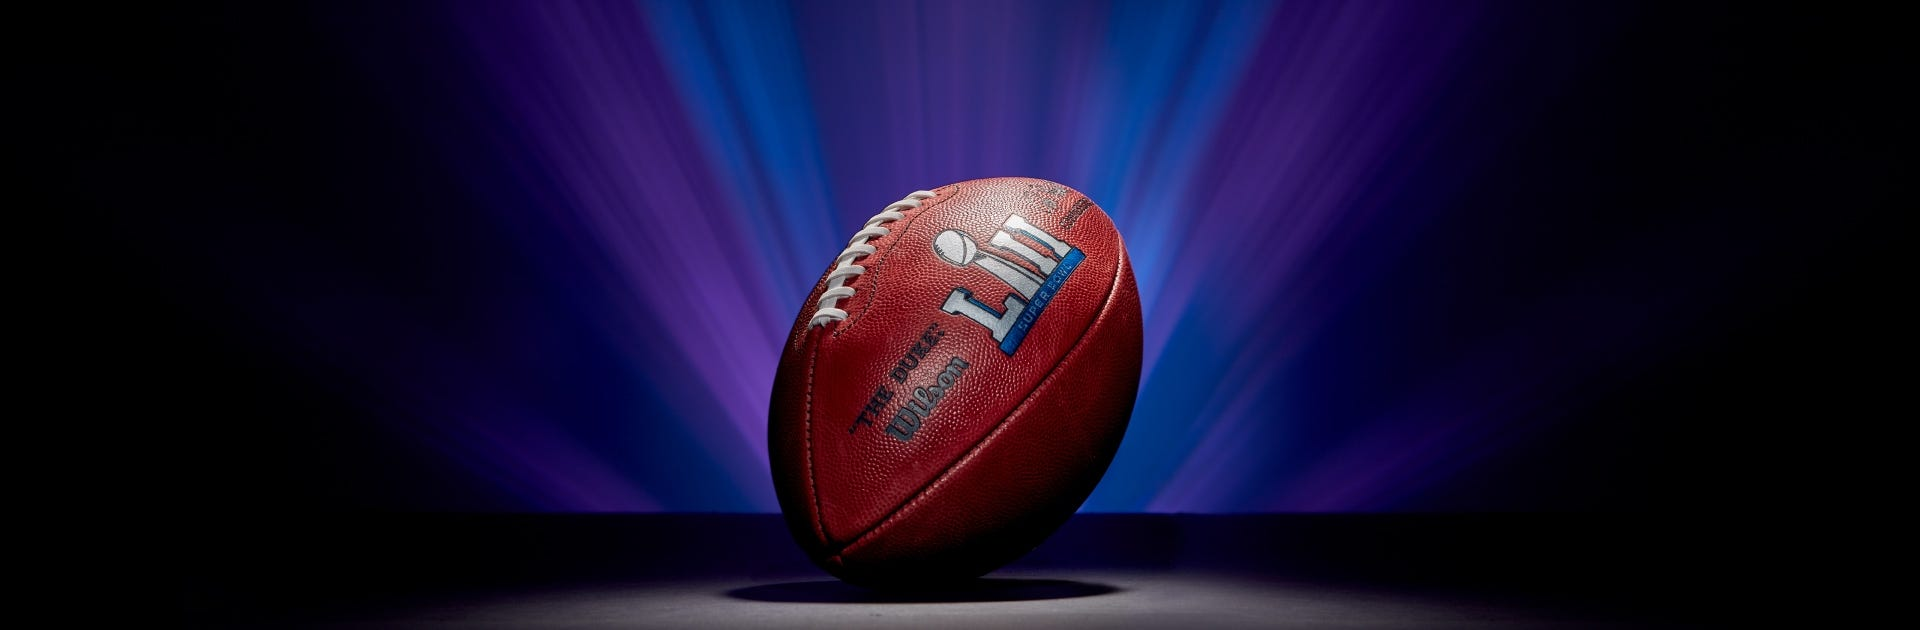 Official Football of Super Bowl 52